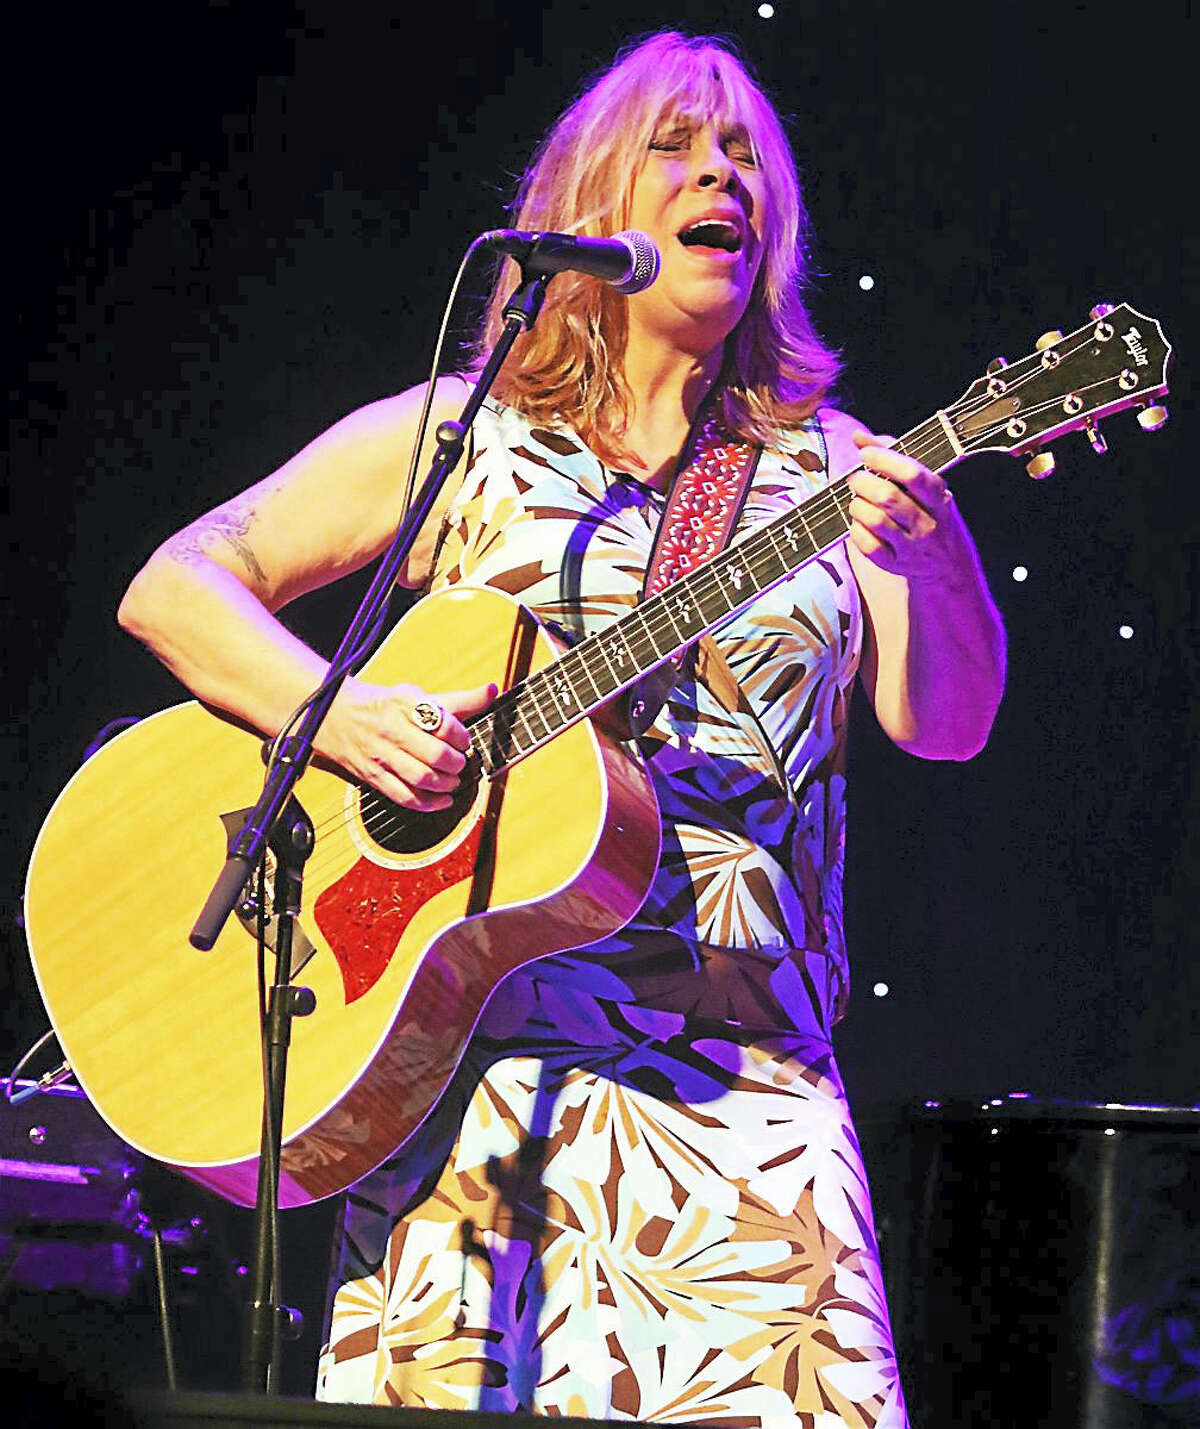 """Photo by John AtashianSinger, songwriter and guitarist Rickie Lee Jones is shown performing on stage at the Infinity Music Hall in Hartford on Aug. 28. During her five decade long career, Jones has recorded in a variety of musical styles including rock, R&B, blues, pop, soul and jazz. Additionally, she is a two time Grammy Award winner and was listed at #30 on VH1's """"100 Greatest Women in Rock & Roll"""" in 1999."""